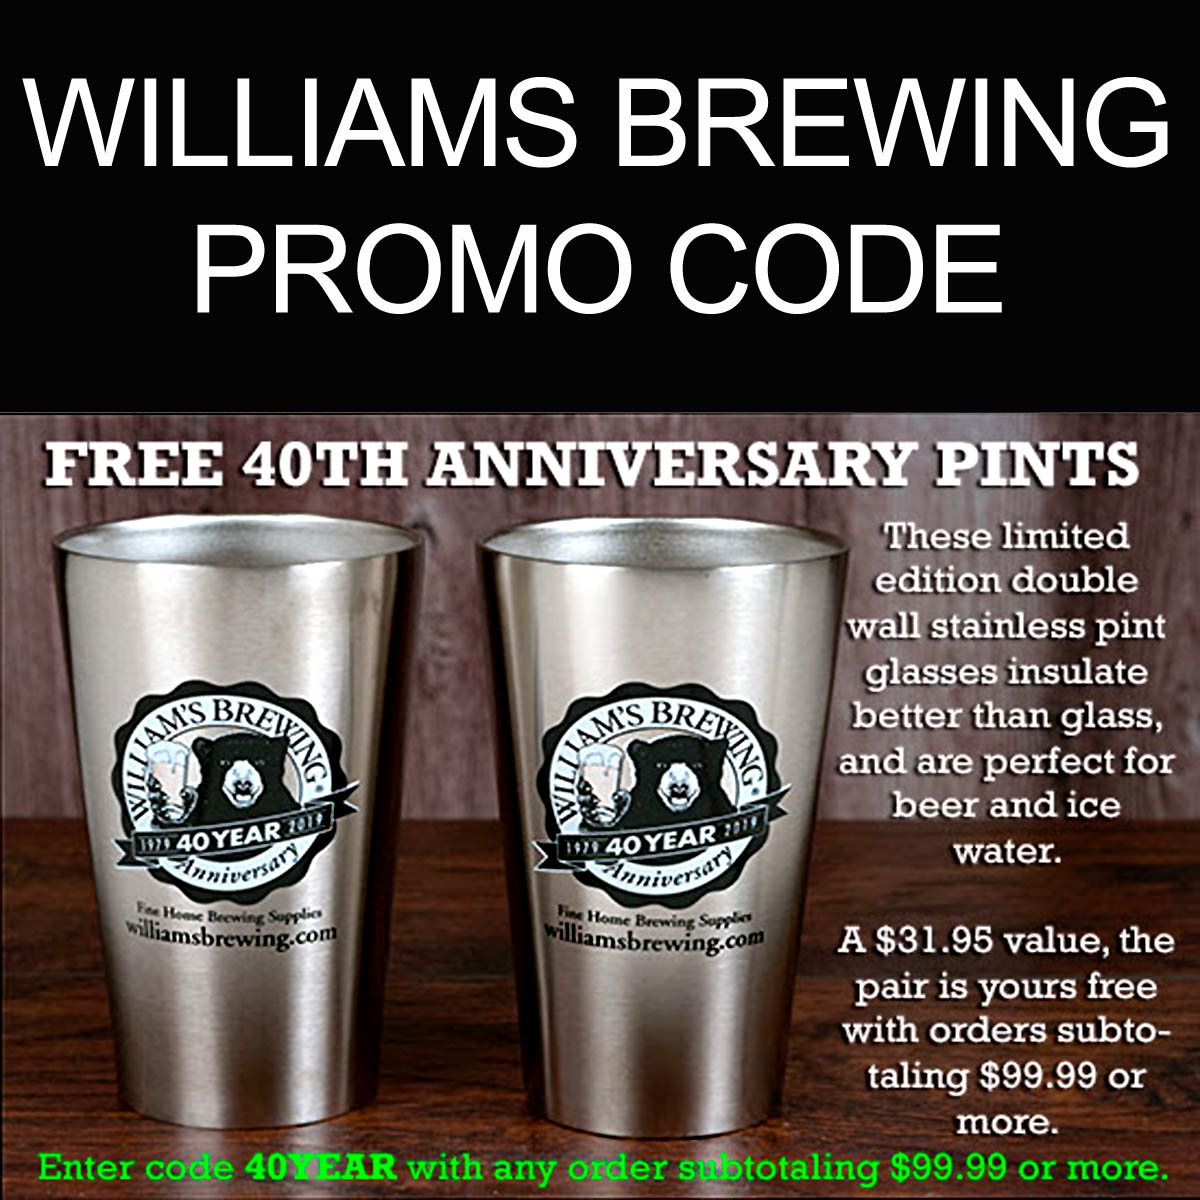 Williams Brewing Spend $100 at Williams Brewing and Get a Pair of Stainless Steel Pint Glasses With This Williams Brewing Promo Code Coupon Code